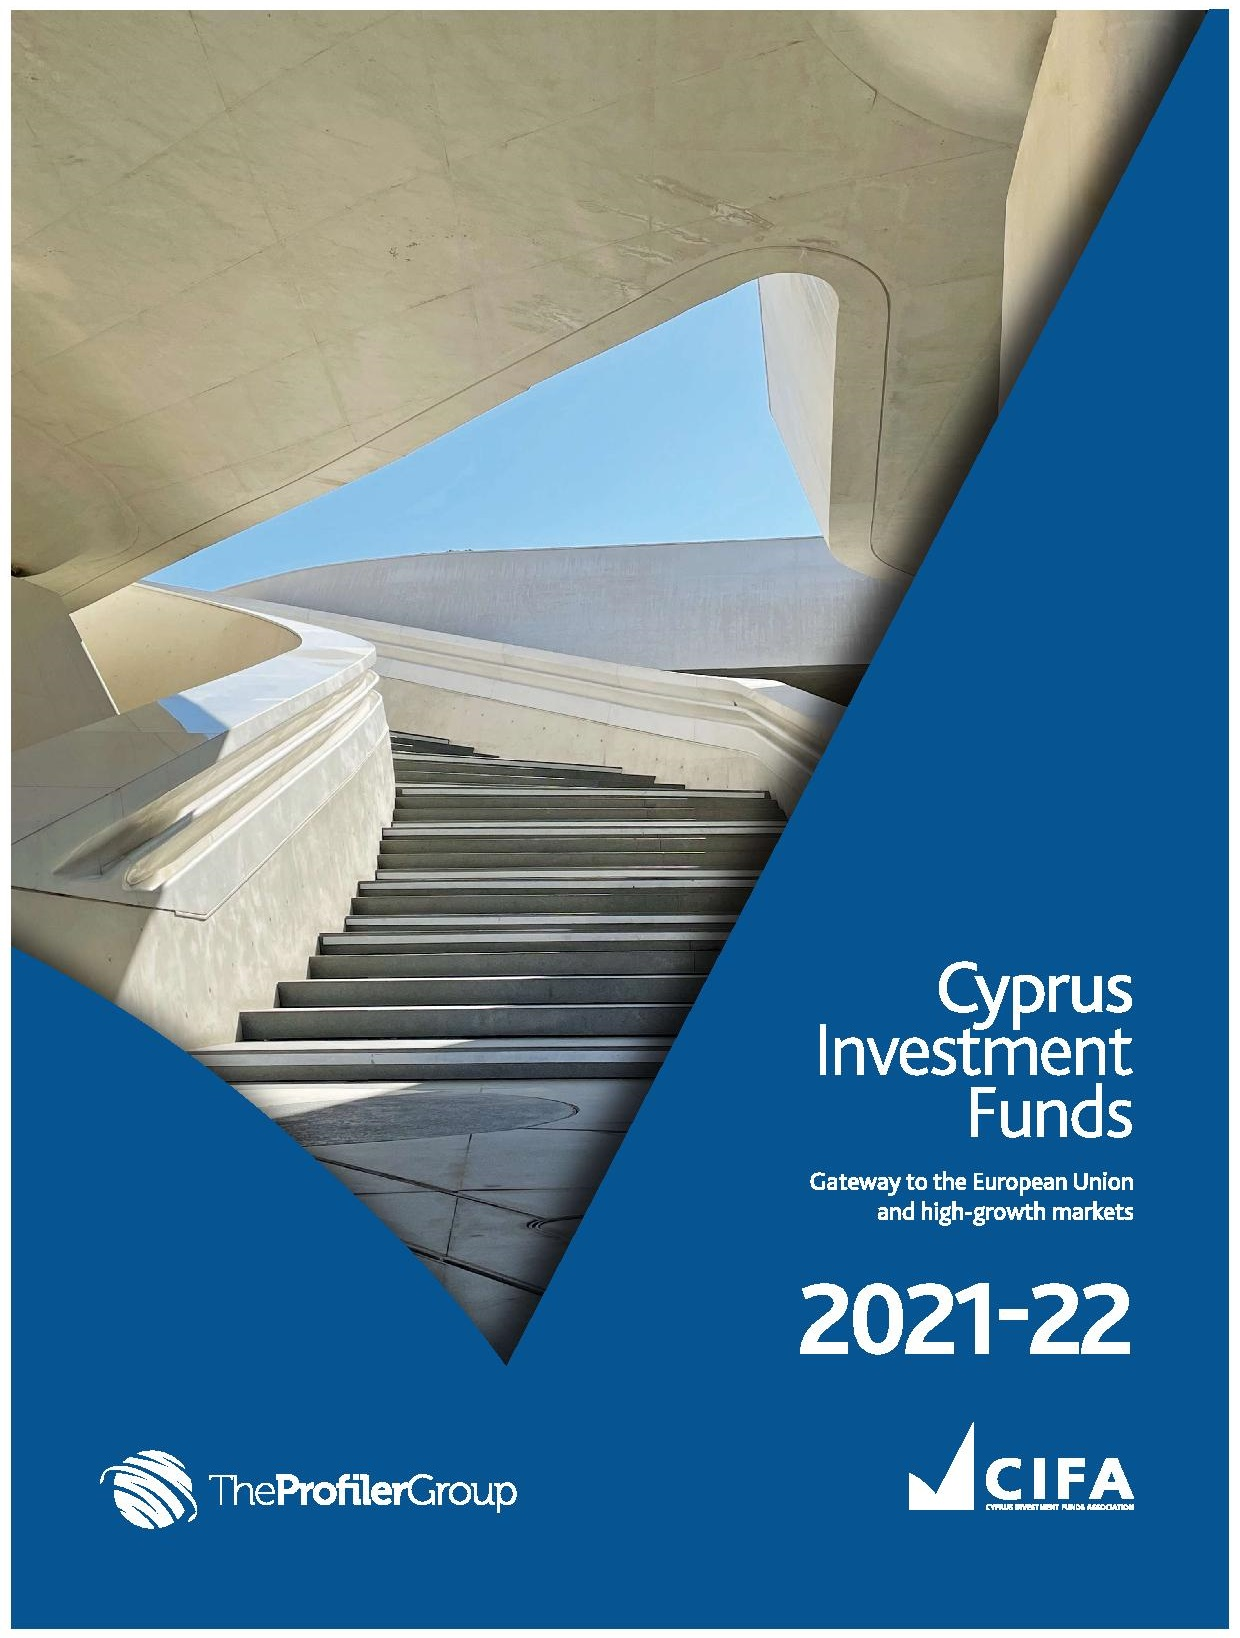 CIFA Investment Funds Guide 2021-2022